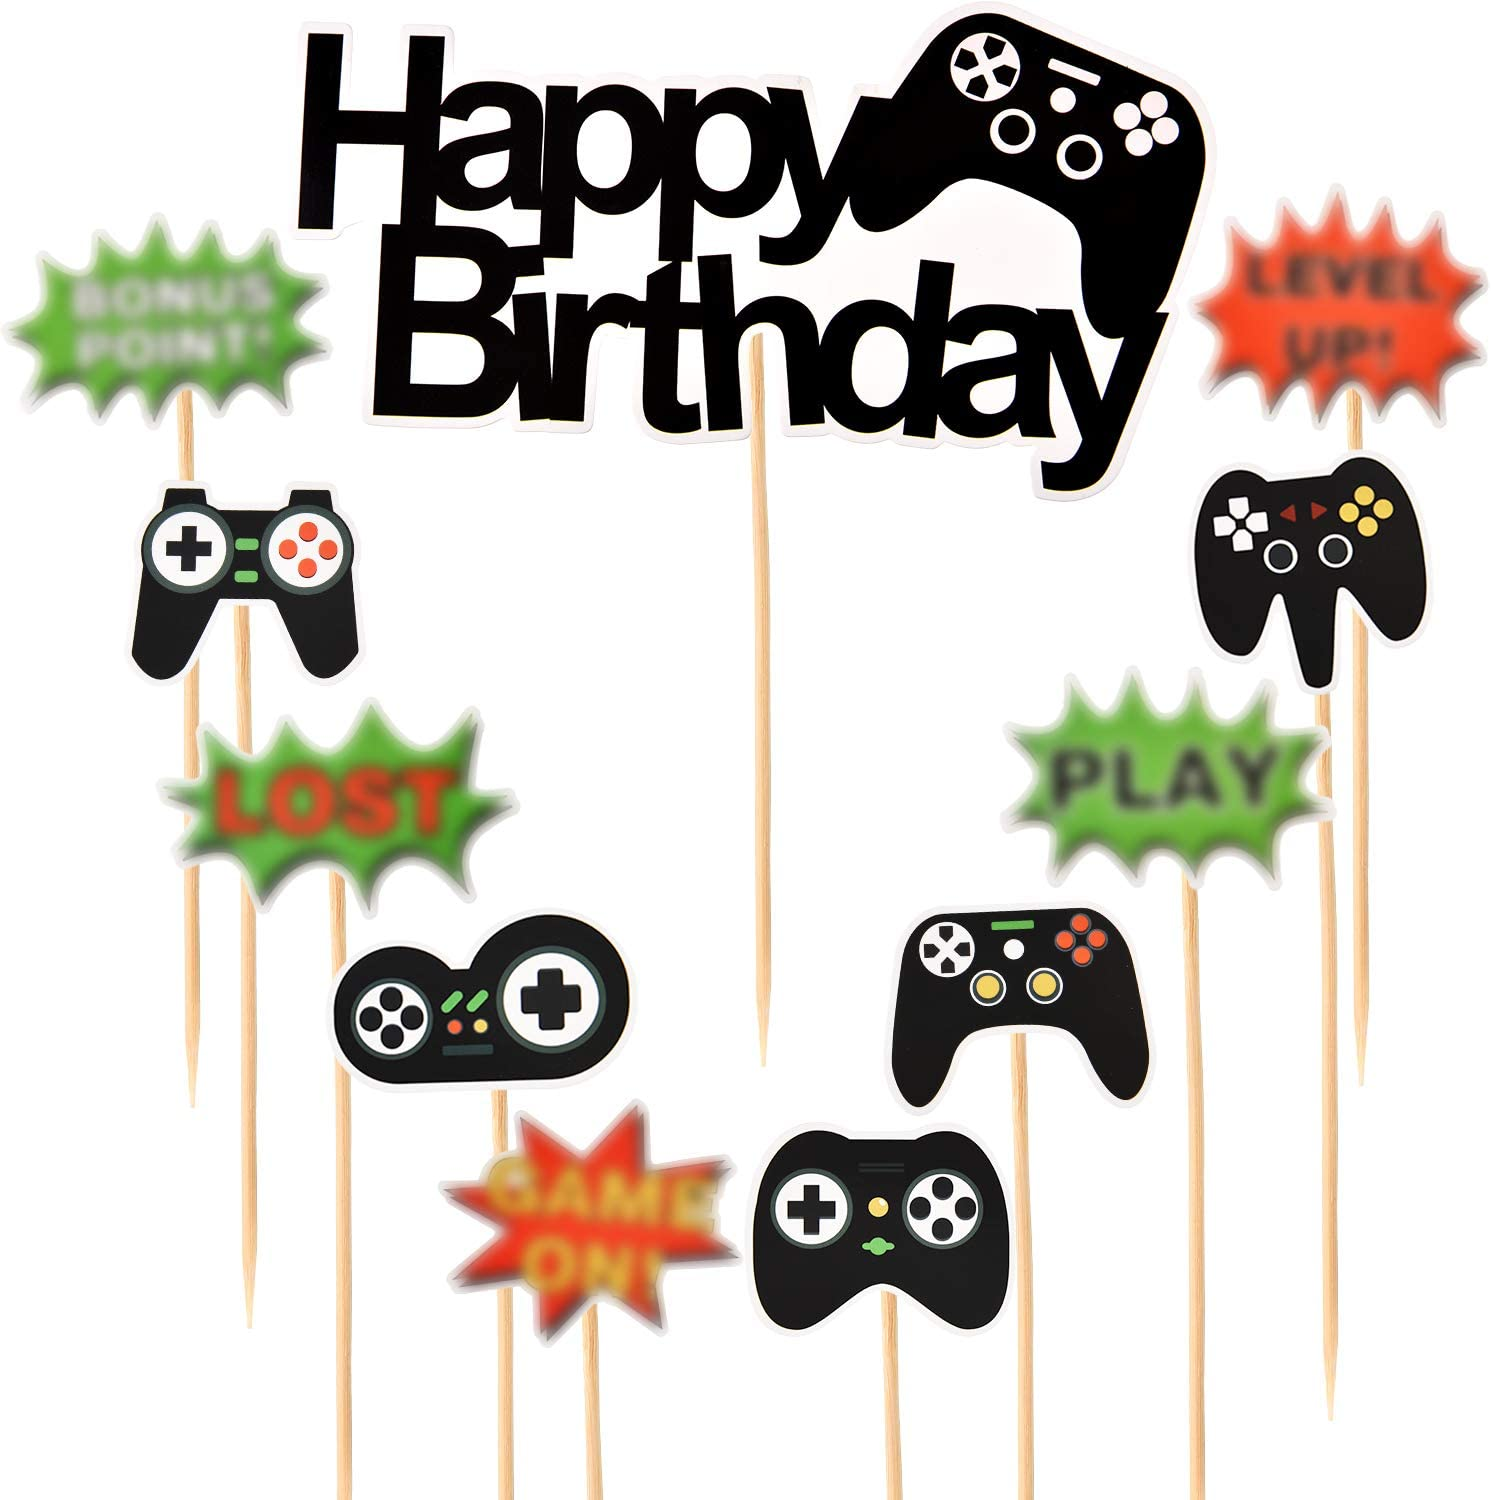 3 Sets Video Game Party Cupcake Toppers Happy Birthday Video Gaming Topper Theme Birthday Party Supplies Decoration Set, Including Wooden Sticks and Glue